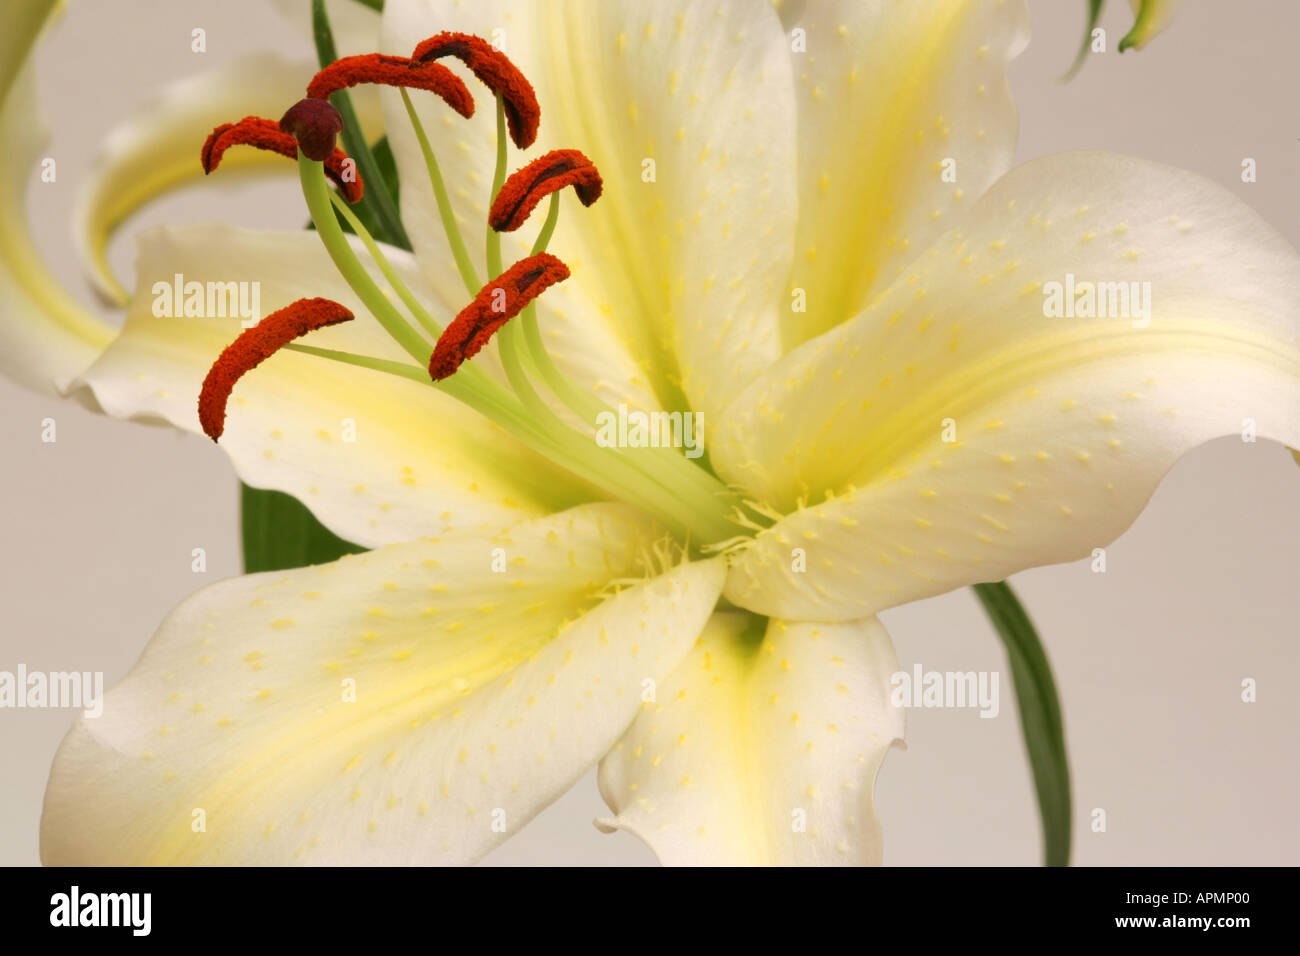 Extreme Closeup Of Yellow And White Lilly Flower Bloom With Brown